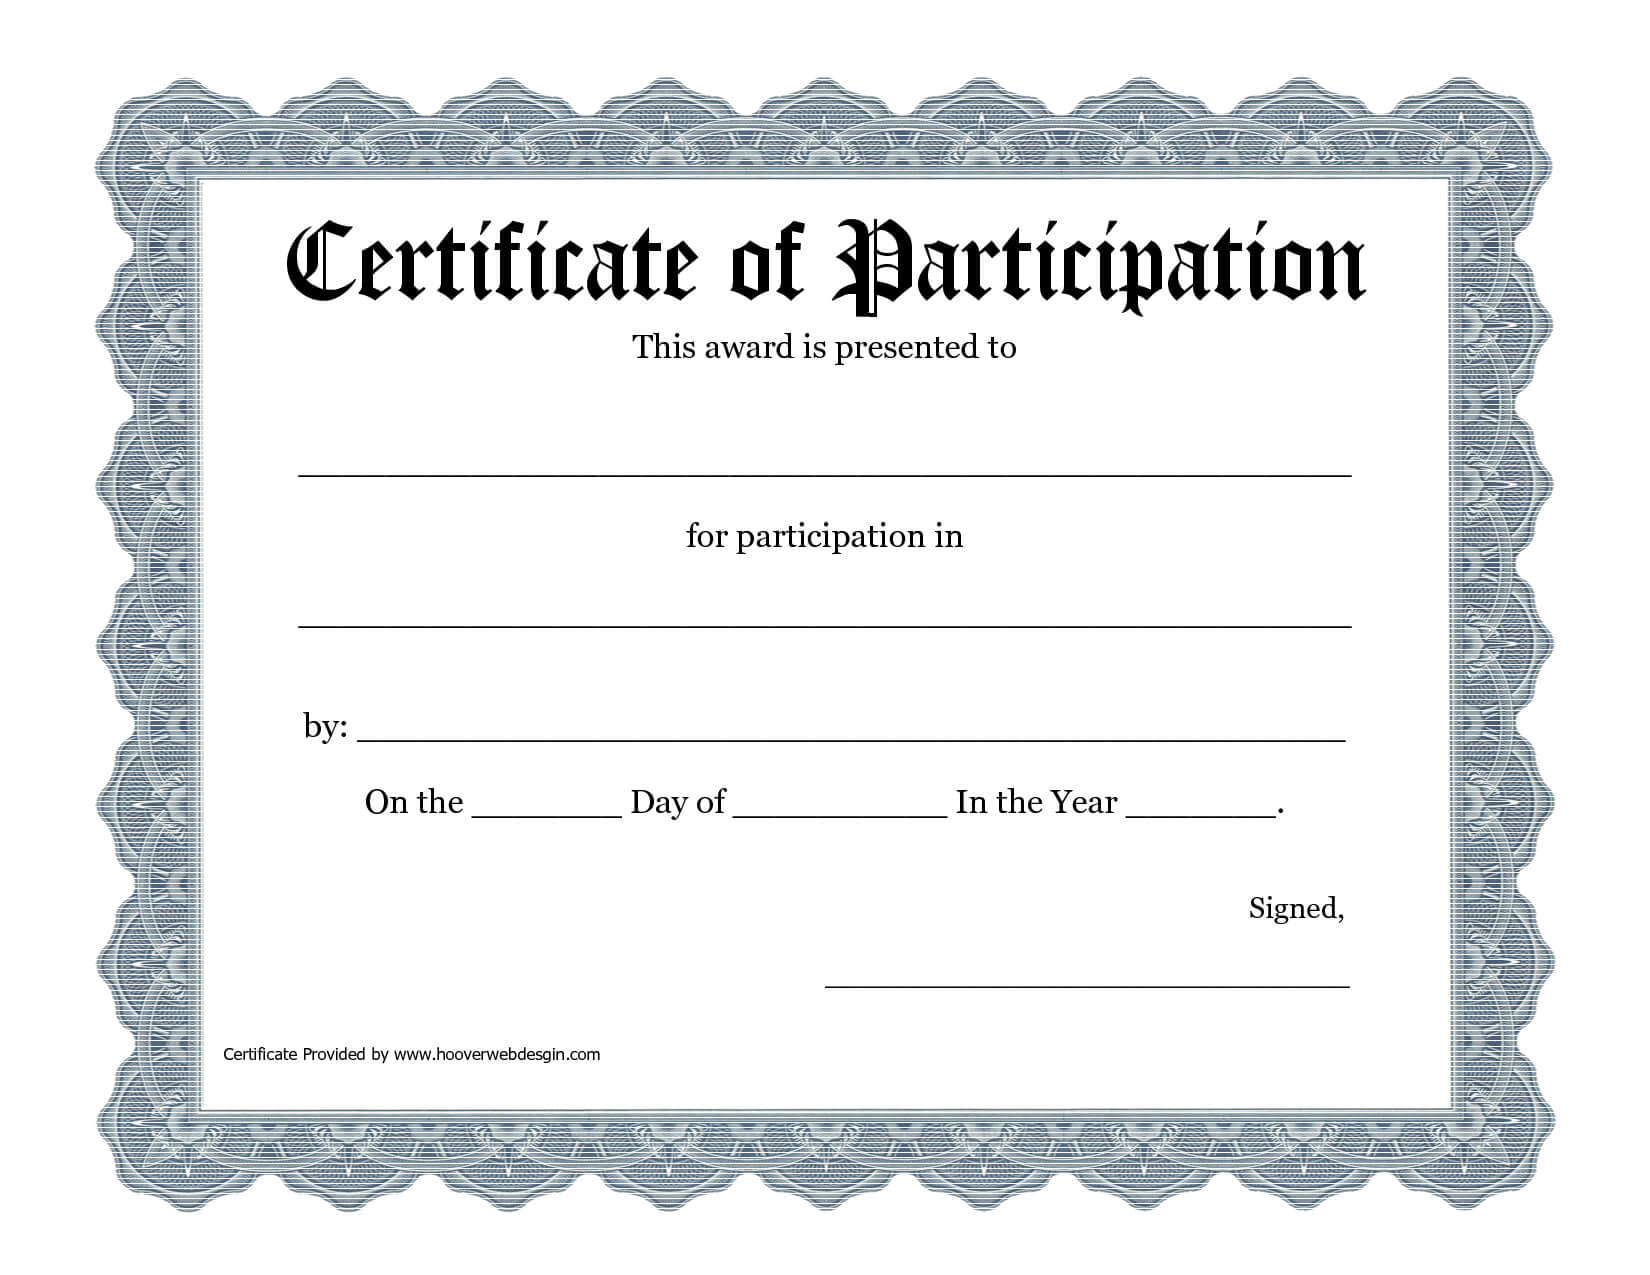 Free Printable Award Certificate Template - Bing Images inside Printable Certificate Of Recognition Templates Free